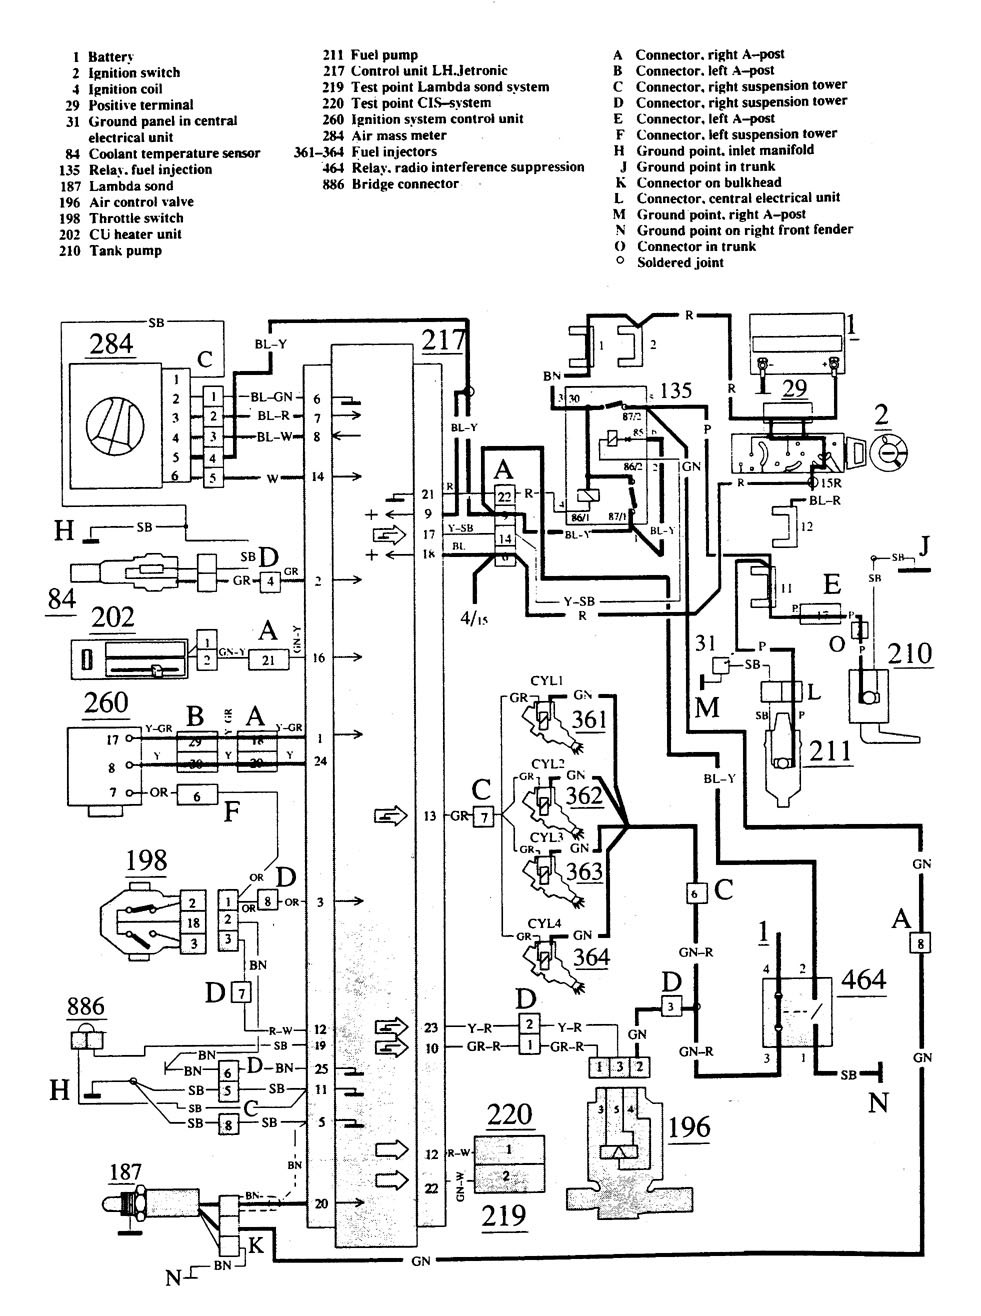 1989 mazda b2200 wiring diagram schematic volvo 740  1988 1989  wiring diagrams fuel controls  volvo 740  1988 1989  wiring